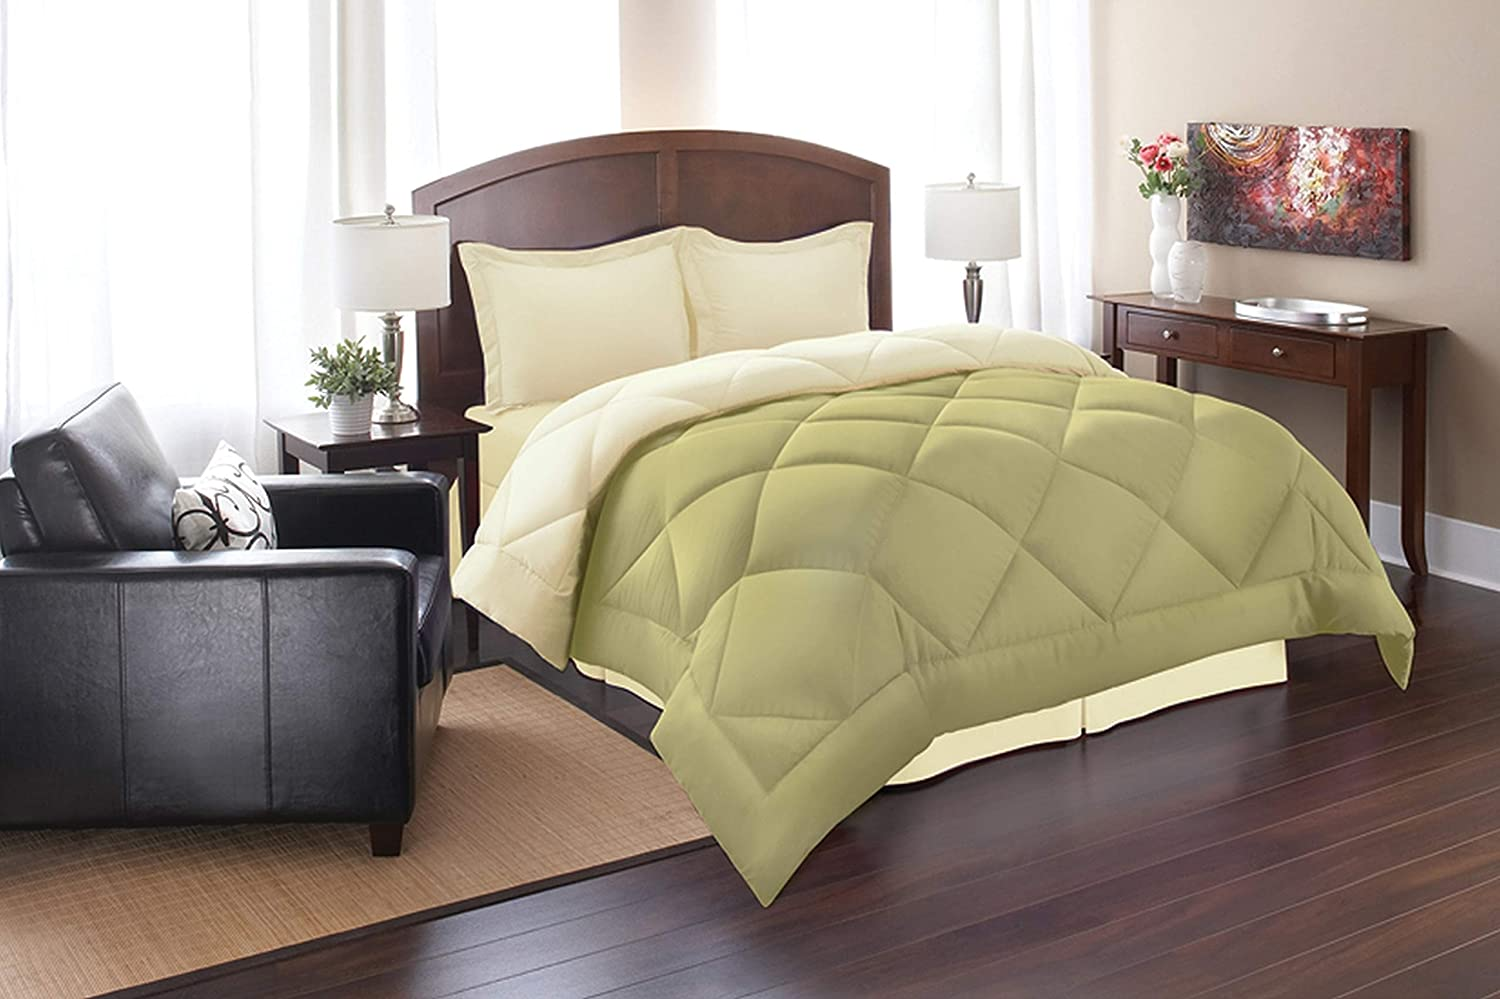 Silky Soft - Goose Max 90% OFF Large-scale sale Down Comforter Reversible Fu Alternative Set